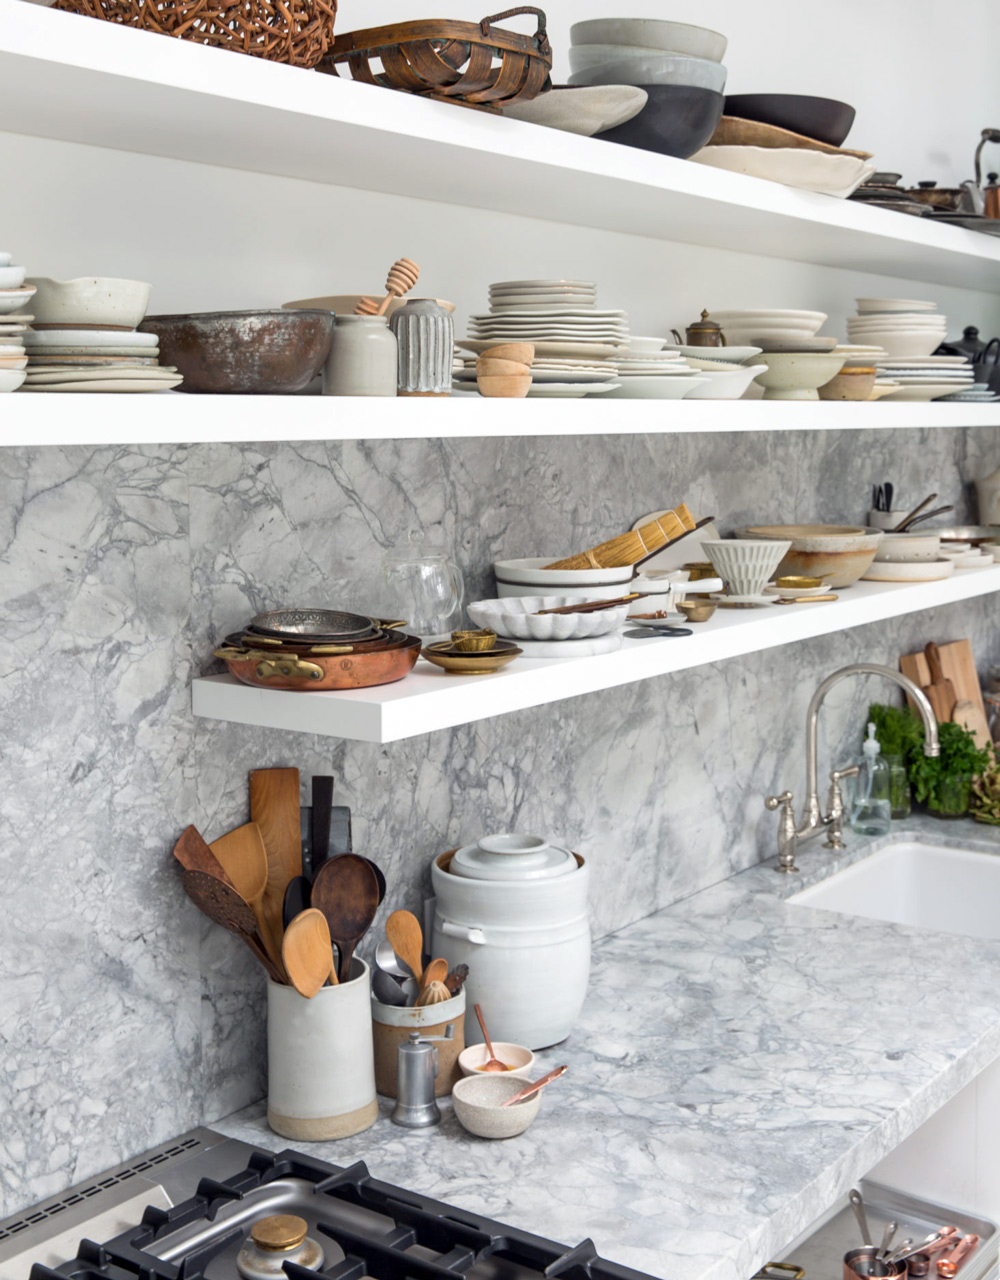 https://www.remodelista.com/posts/kitchen-of-the-week-erin-scott-food-photographer-studio-kitchen-berkeley/